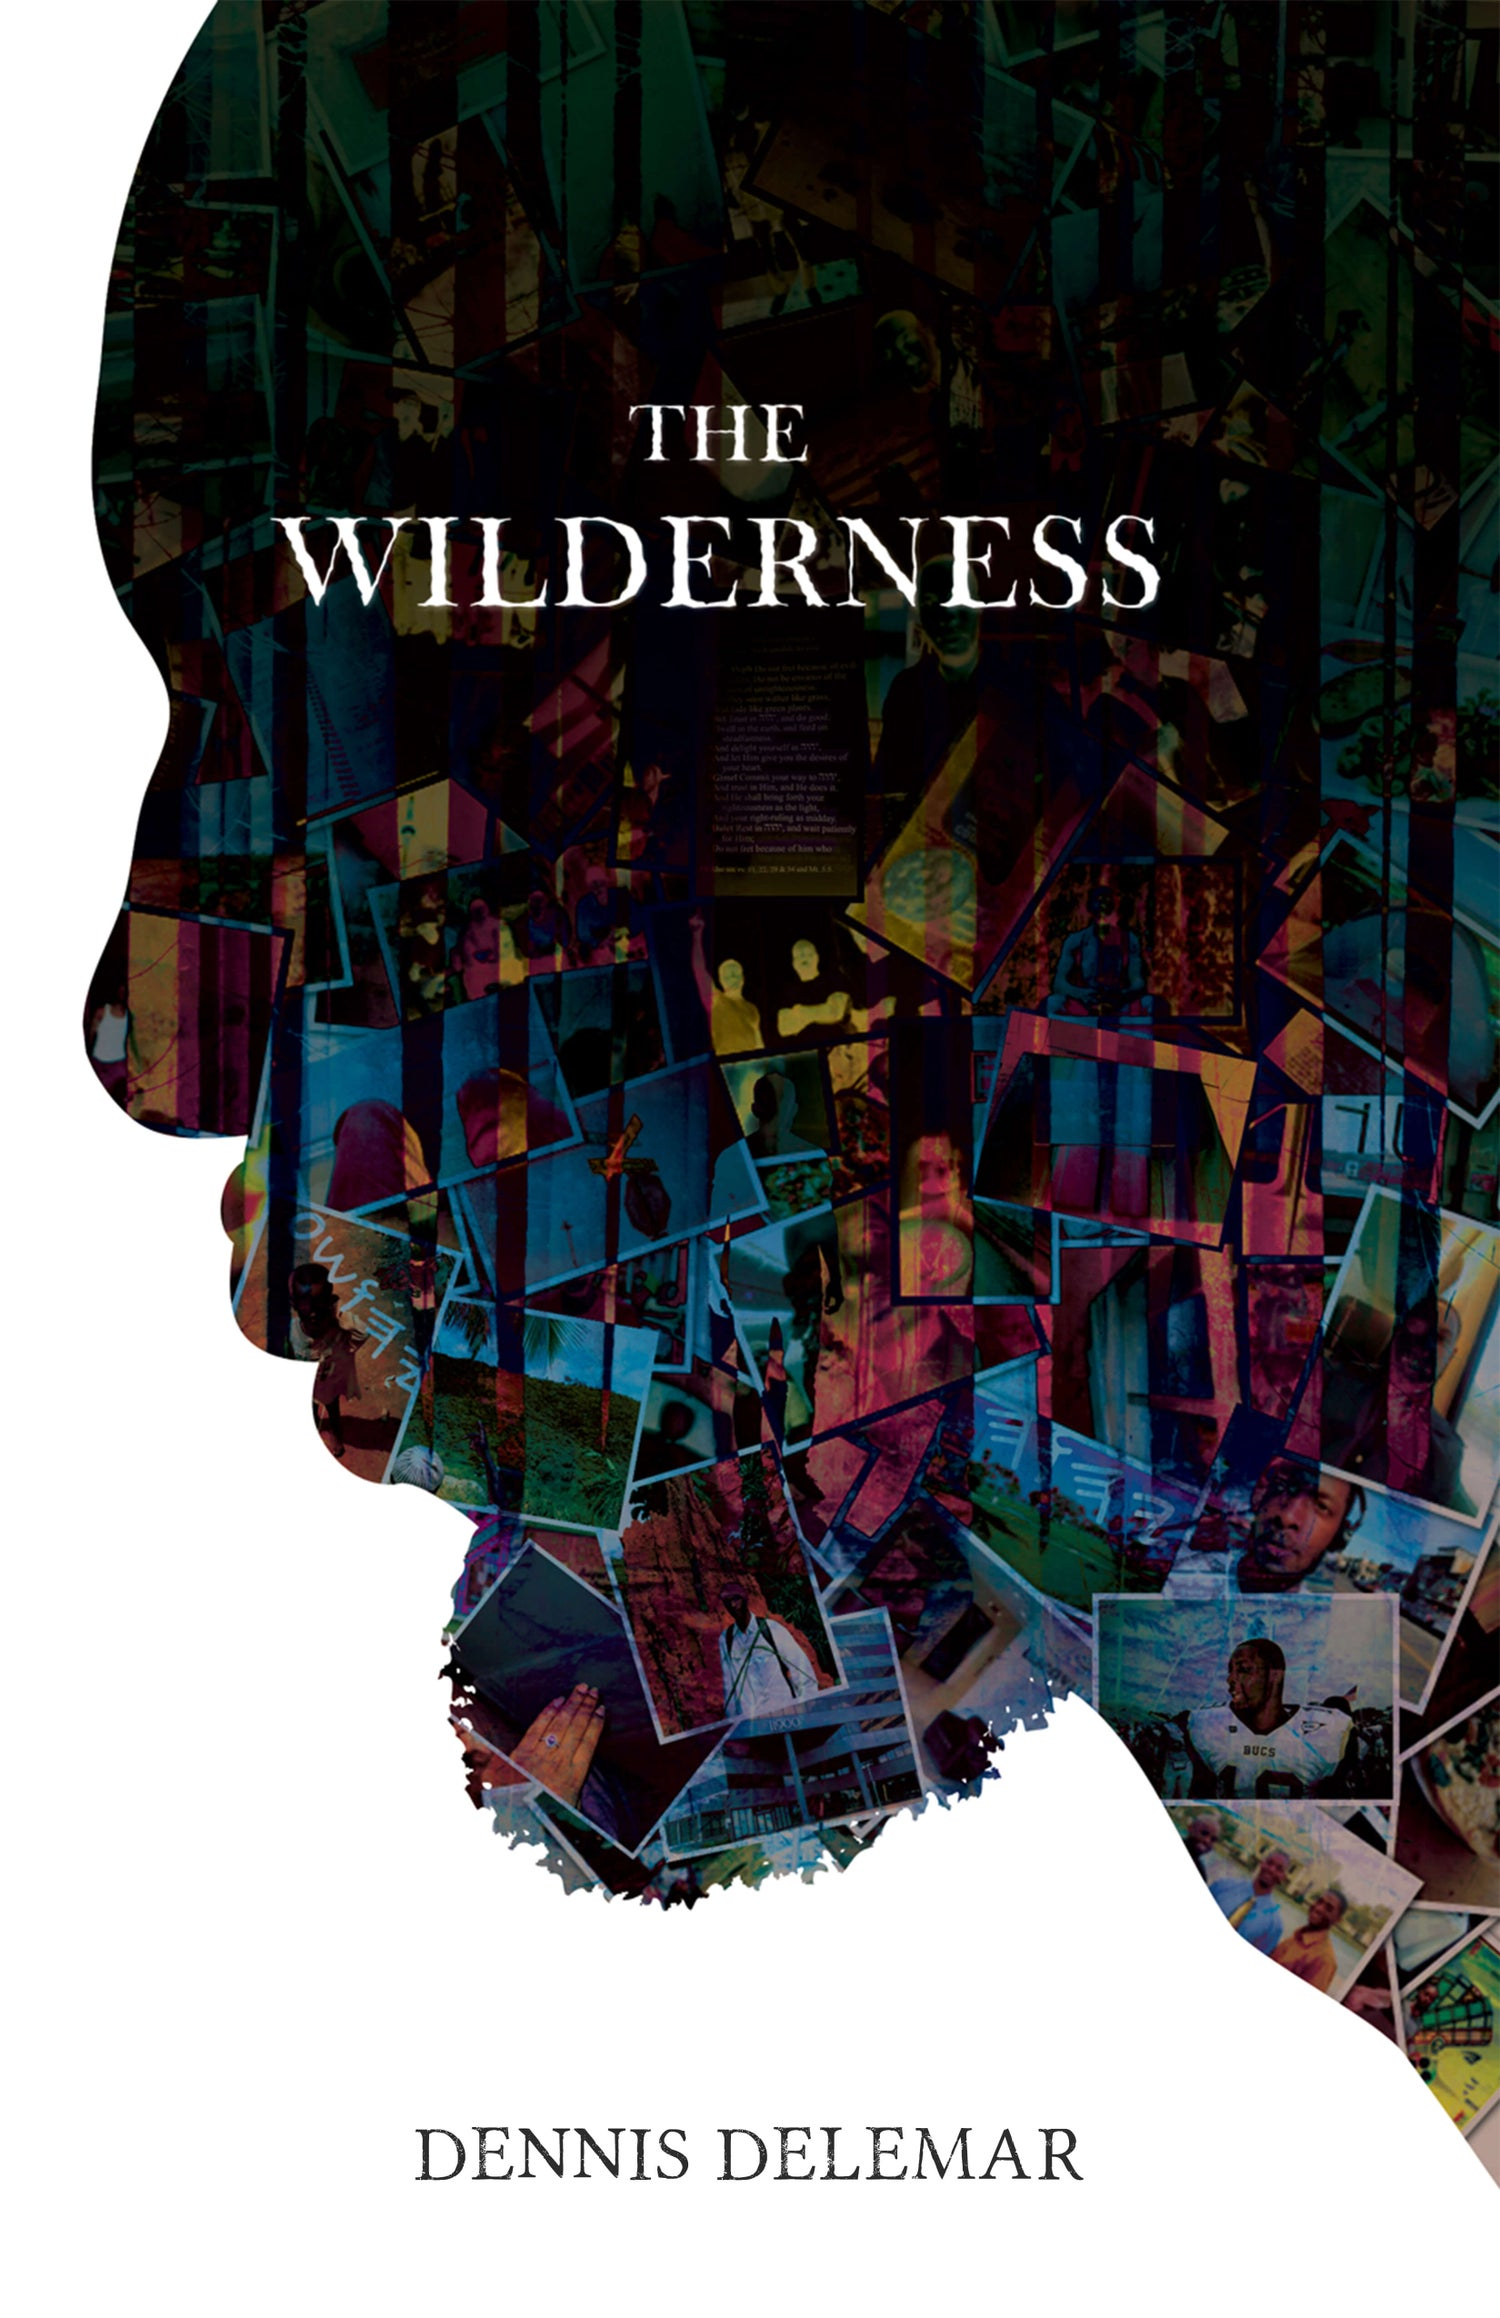 Image of The Wilderness